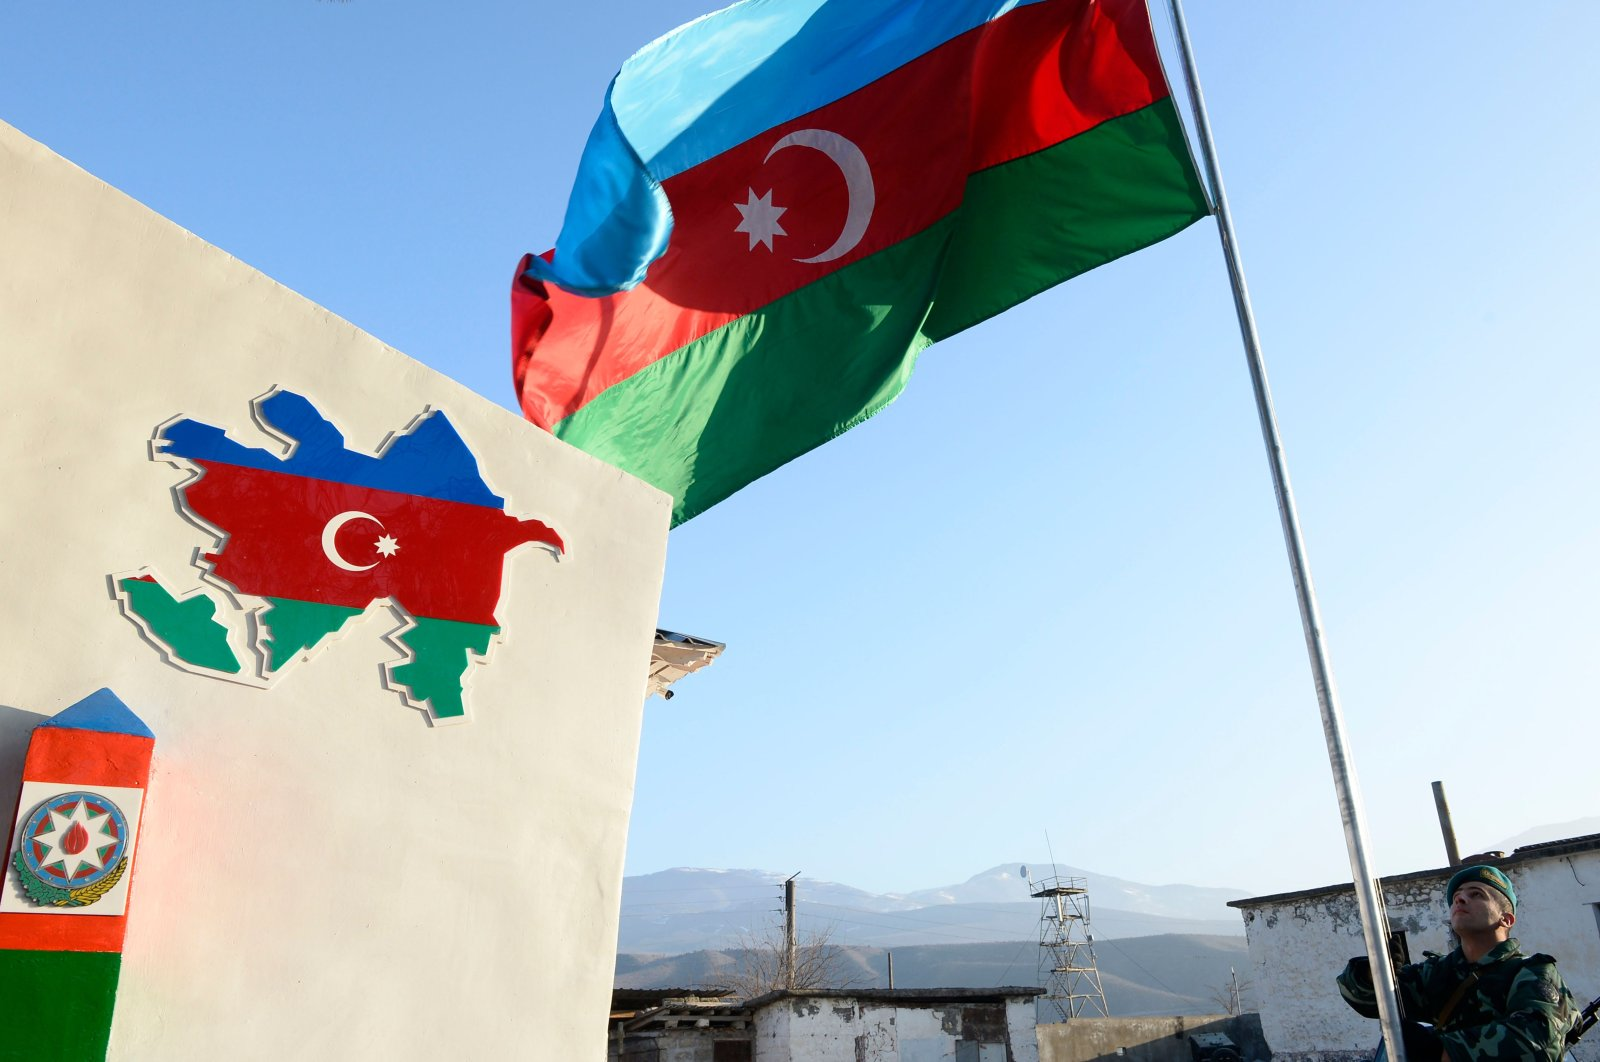 An Azerbaijani border guard raises the national flag during the opening ceremony of the frontier post in the village of Zangilan, Azerbaijan, Jan. 5, 2021. (AFP Photo)